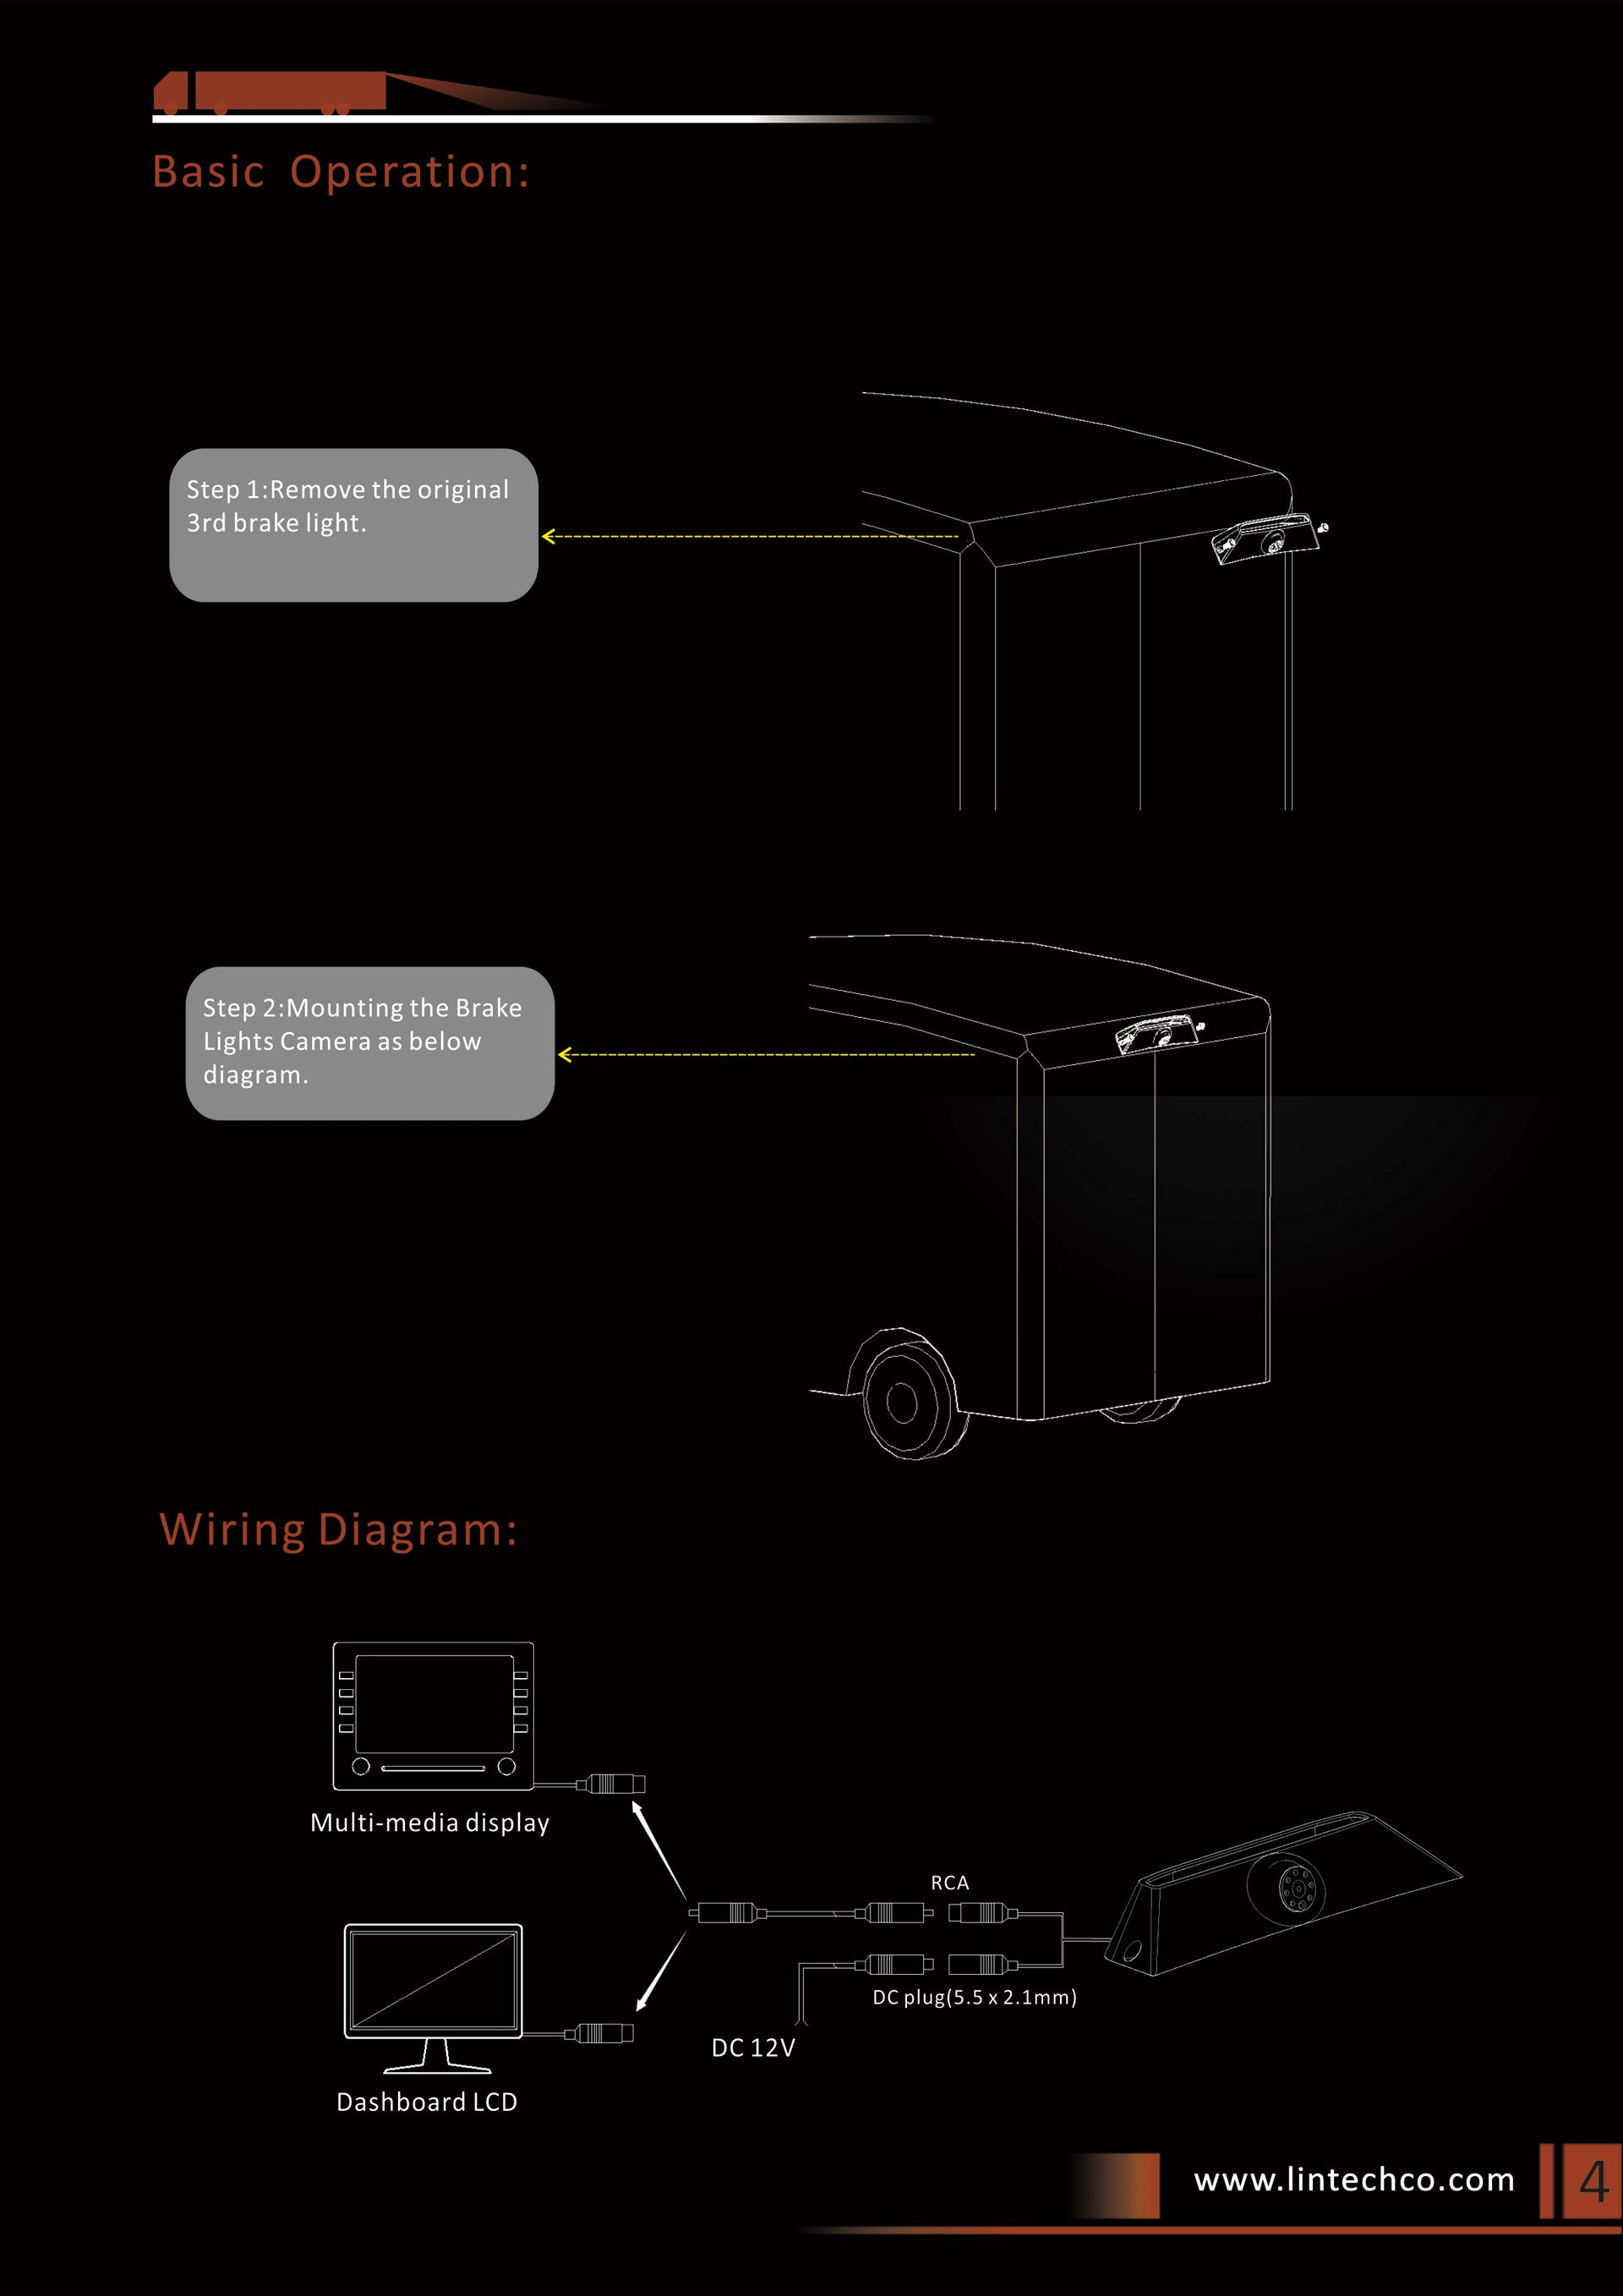 4.Brake Lights Camera For IVECO Daily